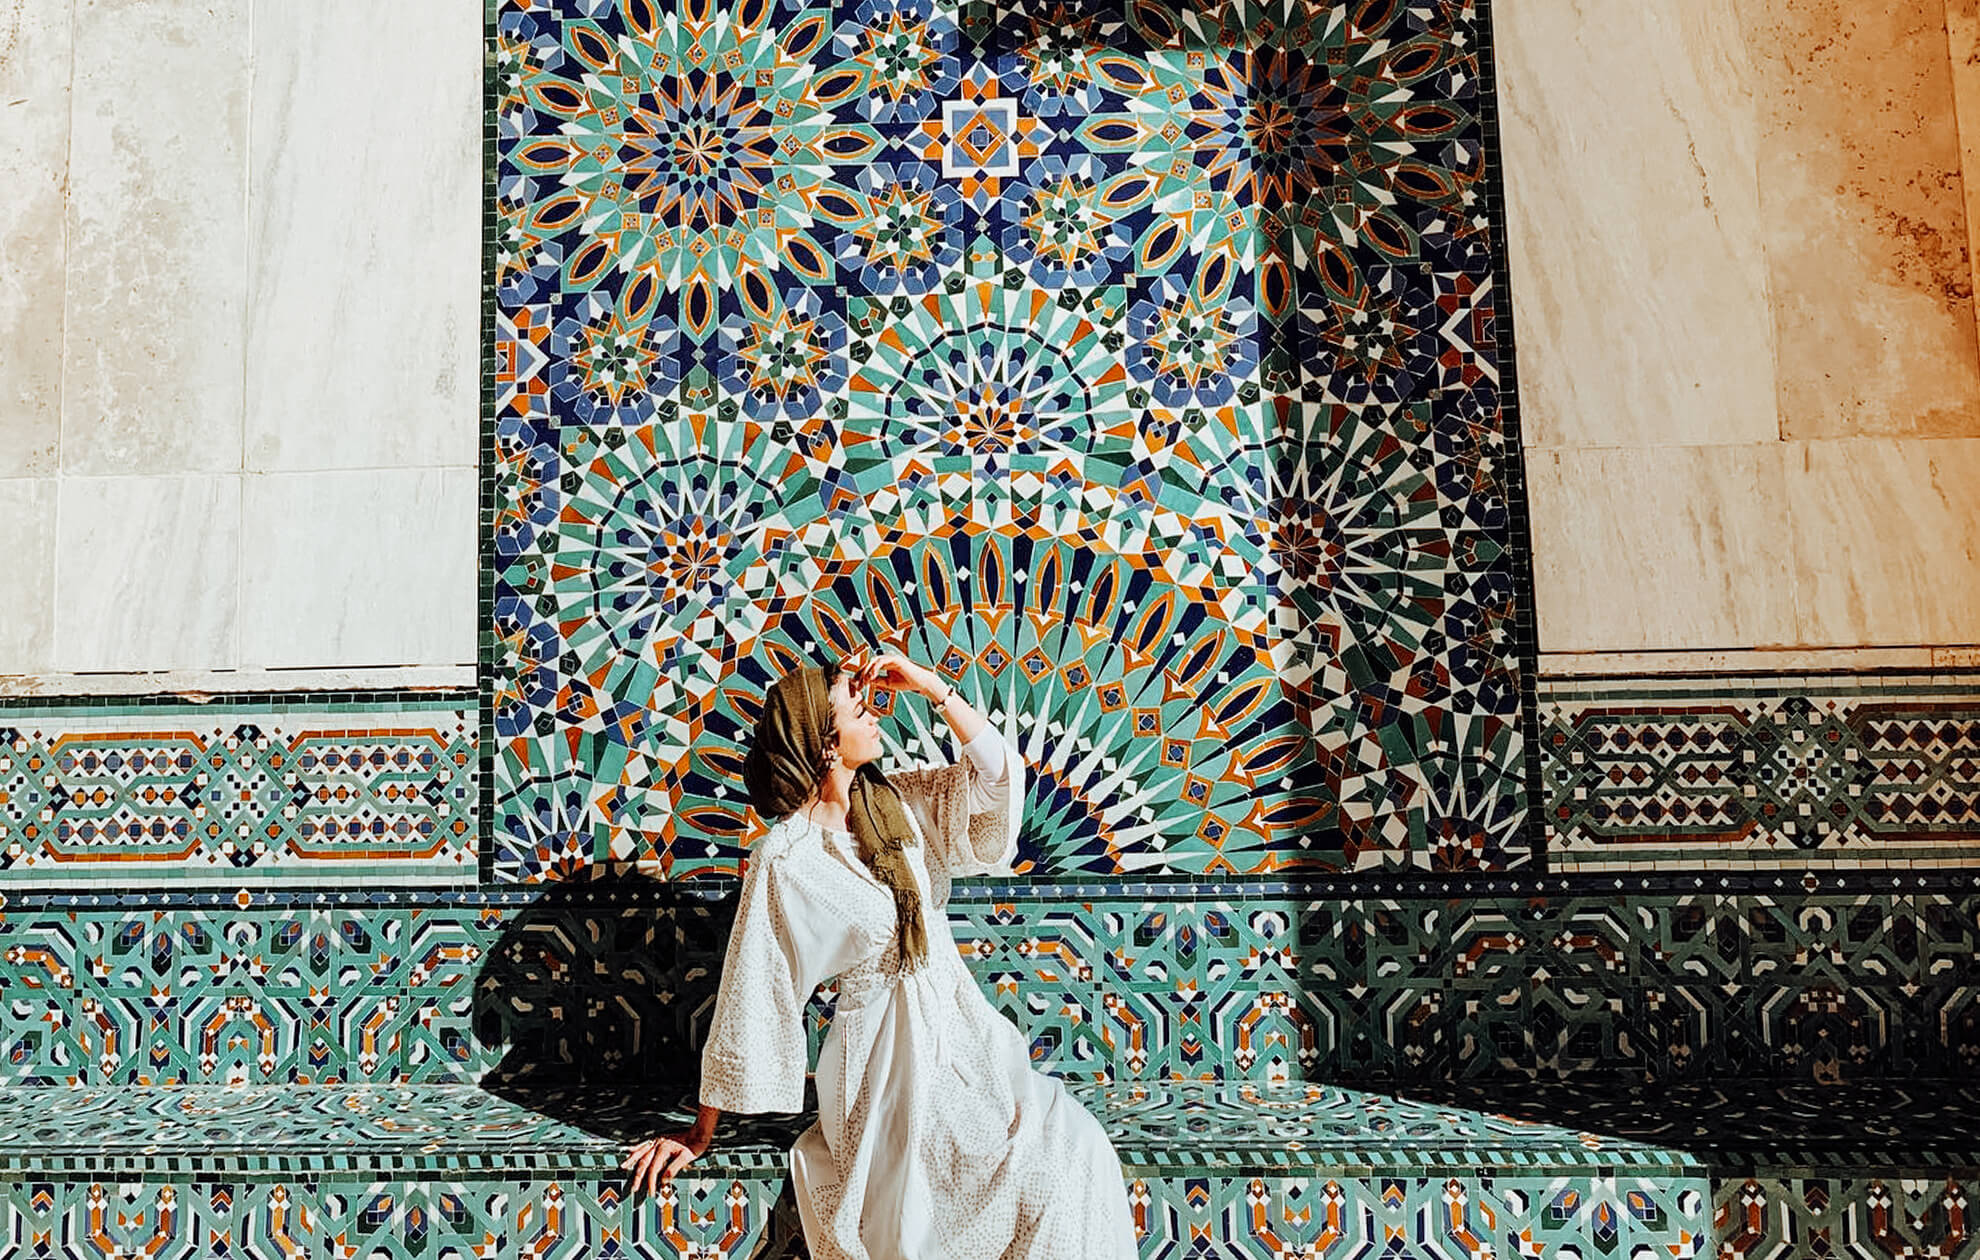 young women posing in front of mosaic tiled wall